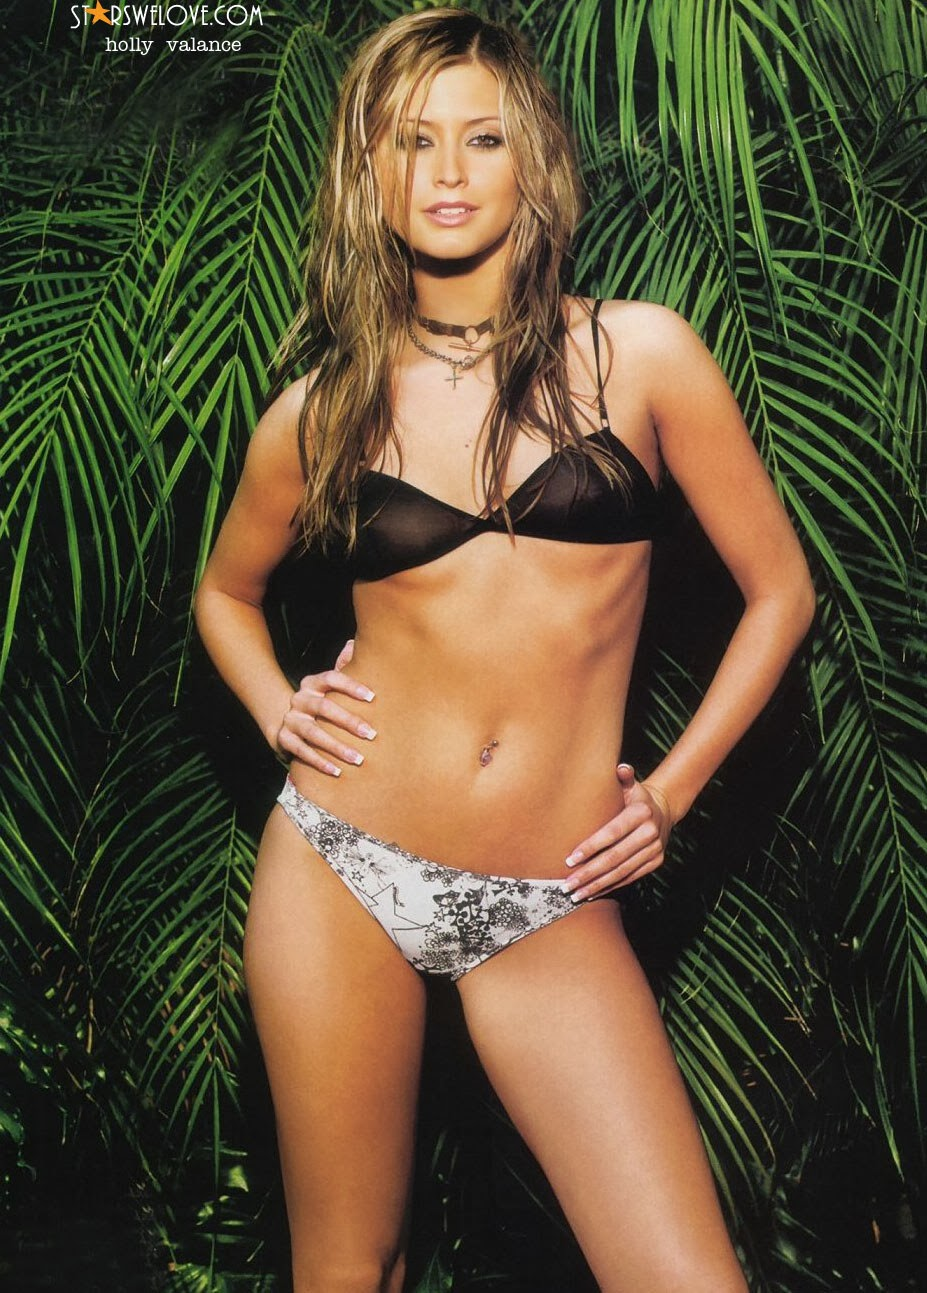 Holly valance in bikini who this?